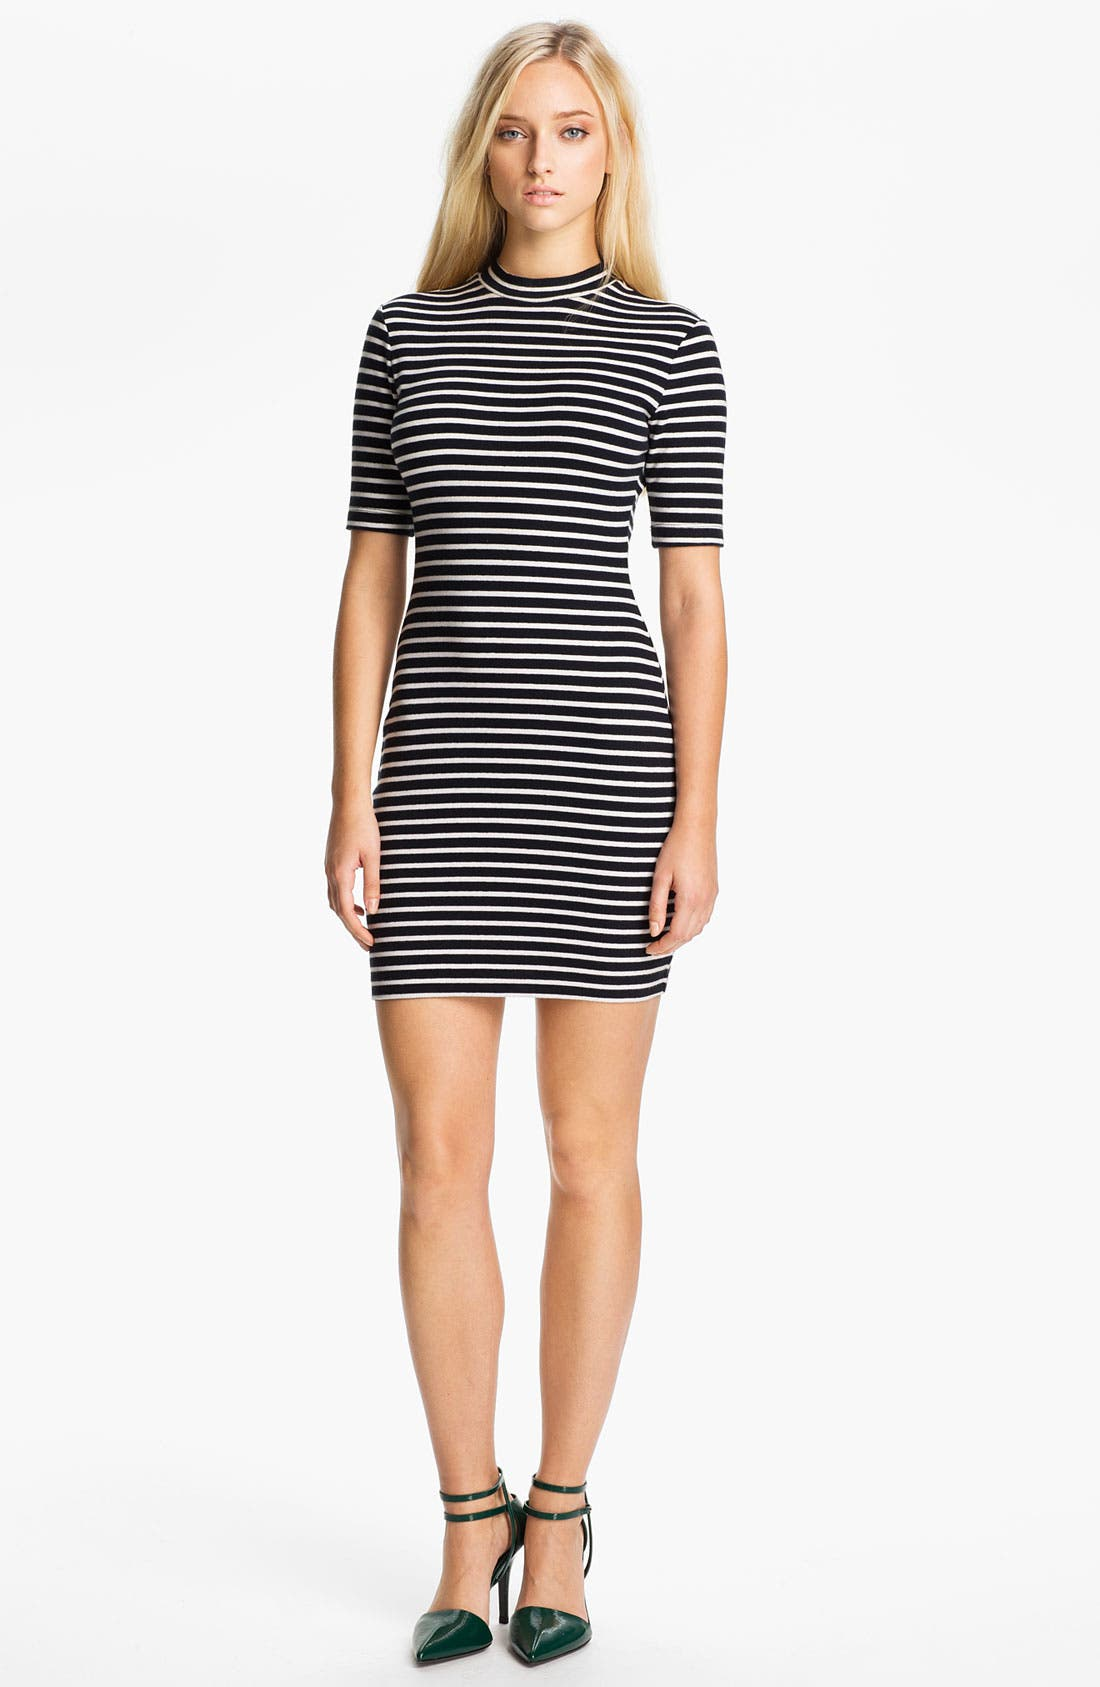 Alternate Image 1 Selected - T by Alexander Wang Stripe Stretch Knit Dress